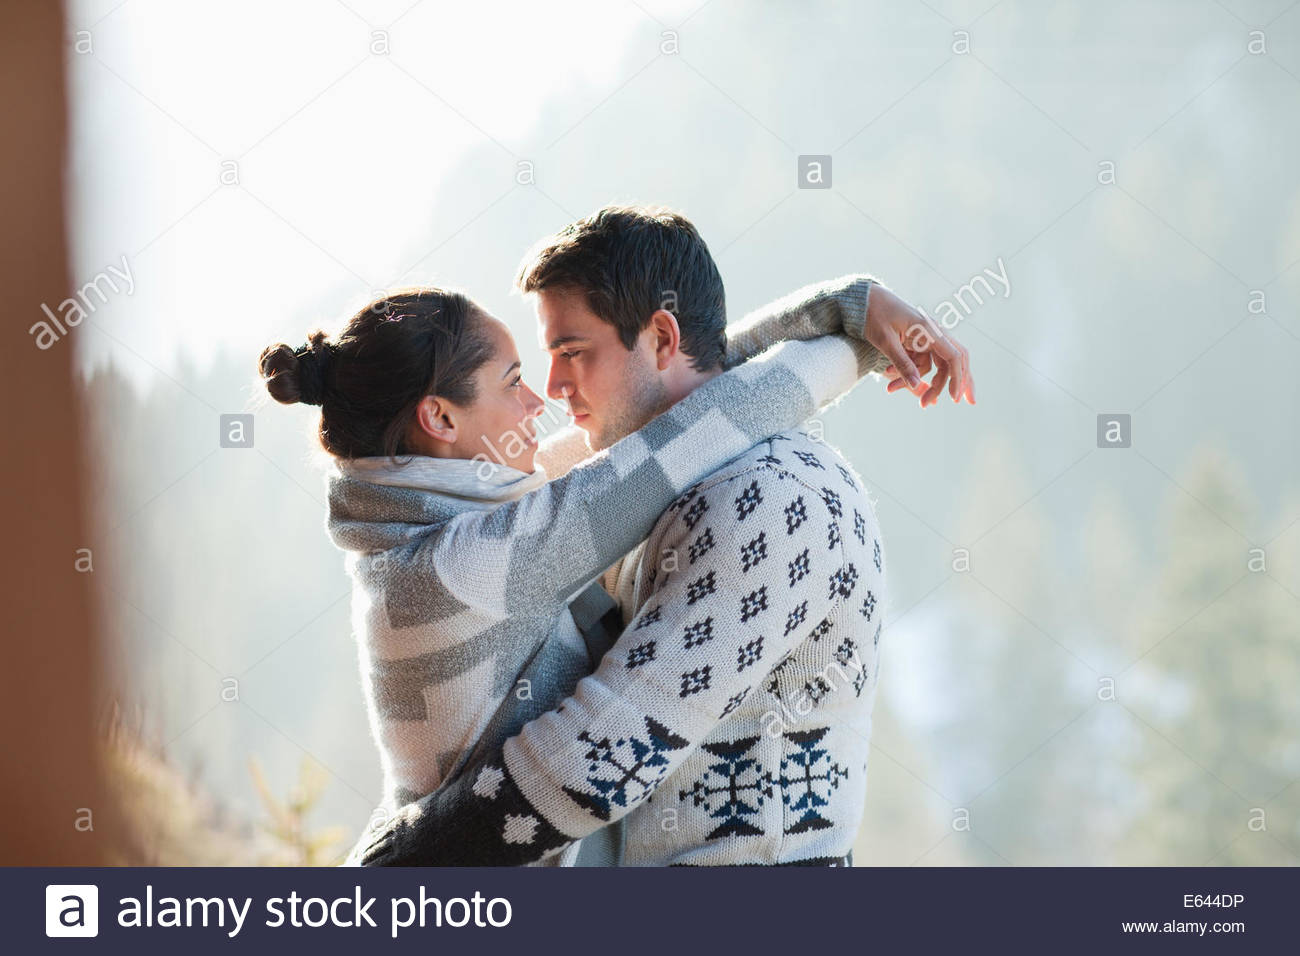 Couple hugging face to face outdoors. Couple Hugging Face To Face Outdoors Stock Photo  Royalty Free